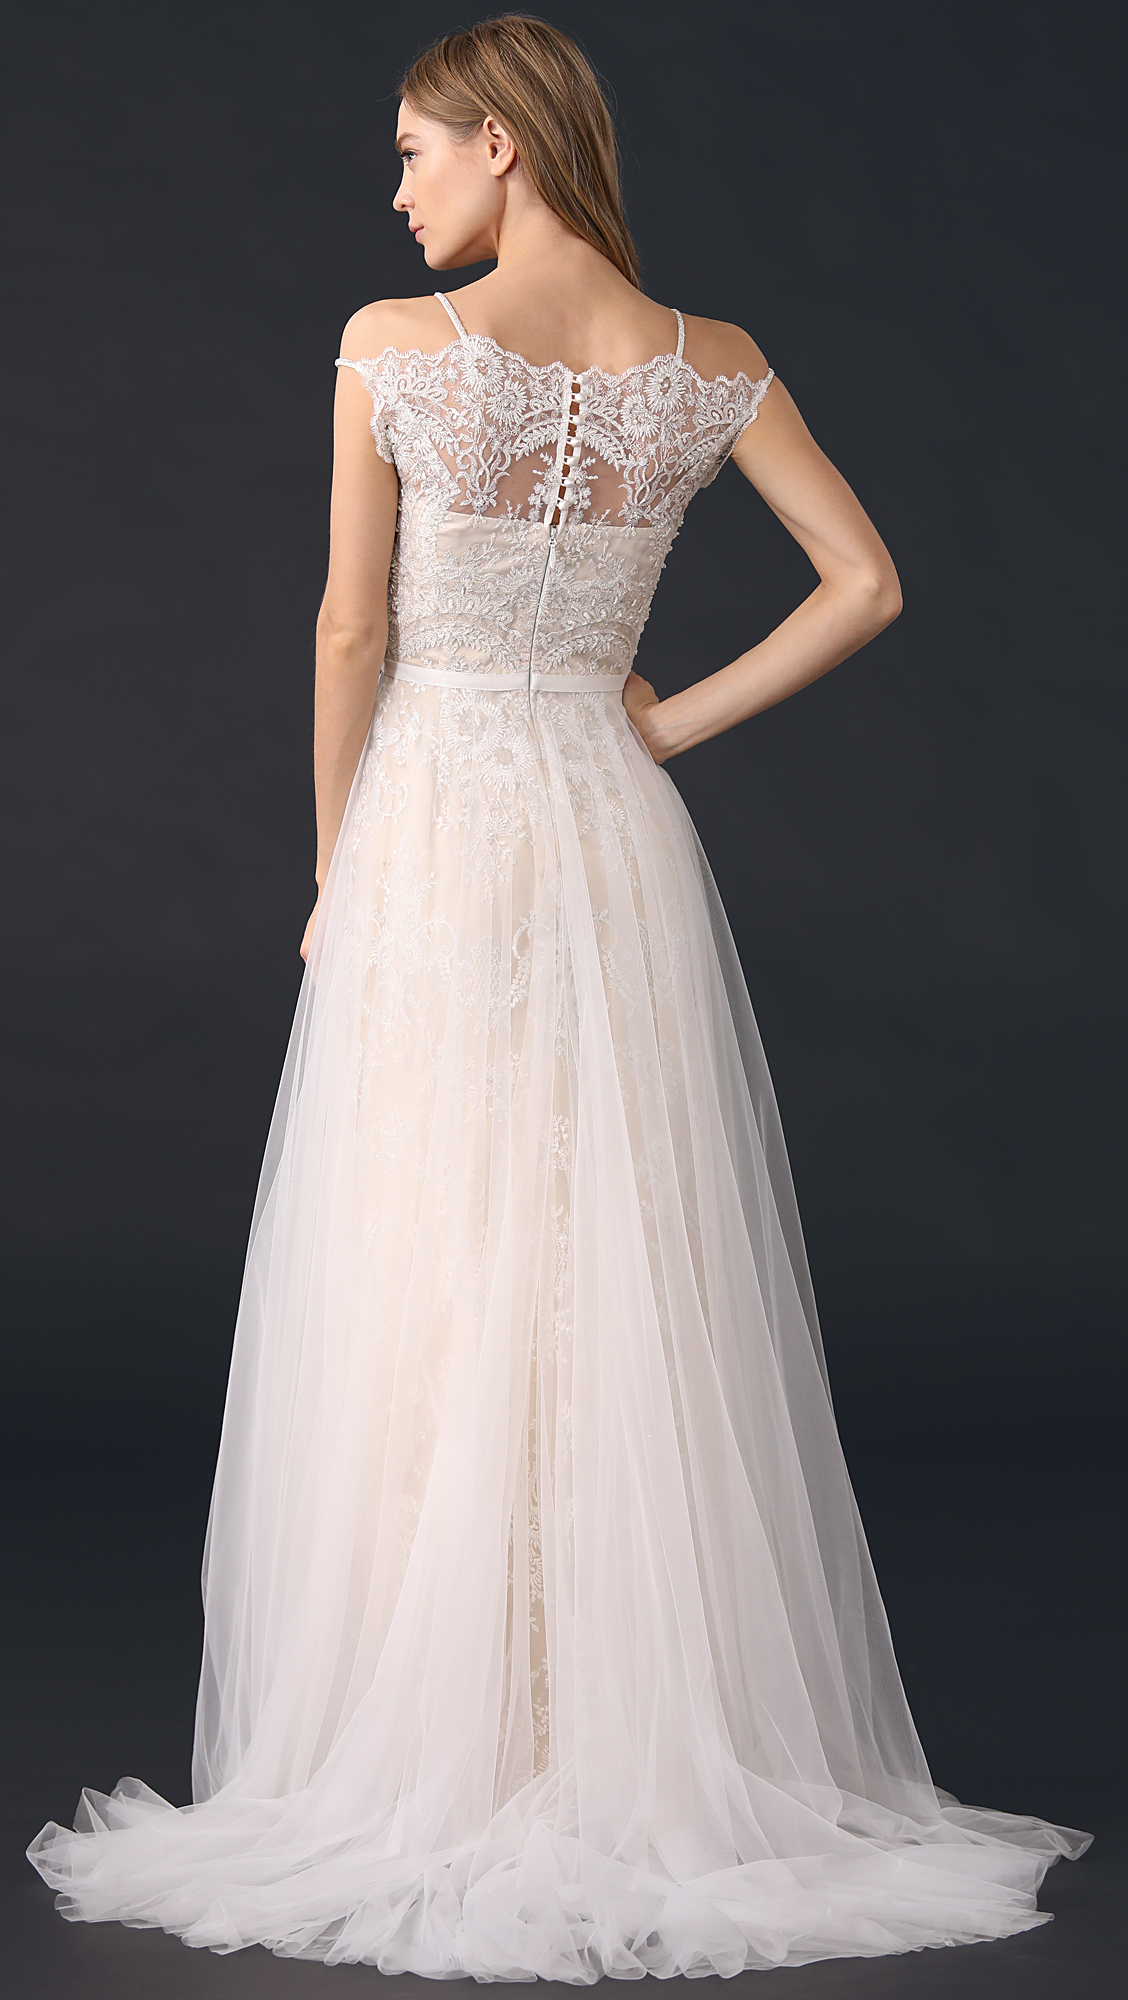 Catherine Deane Harlow Gown | SHOPBOP